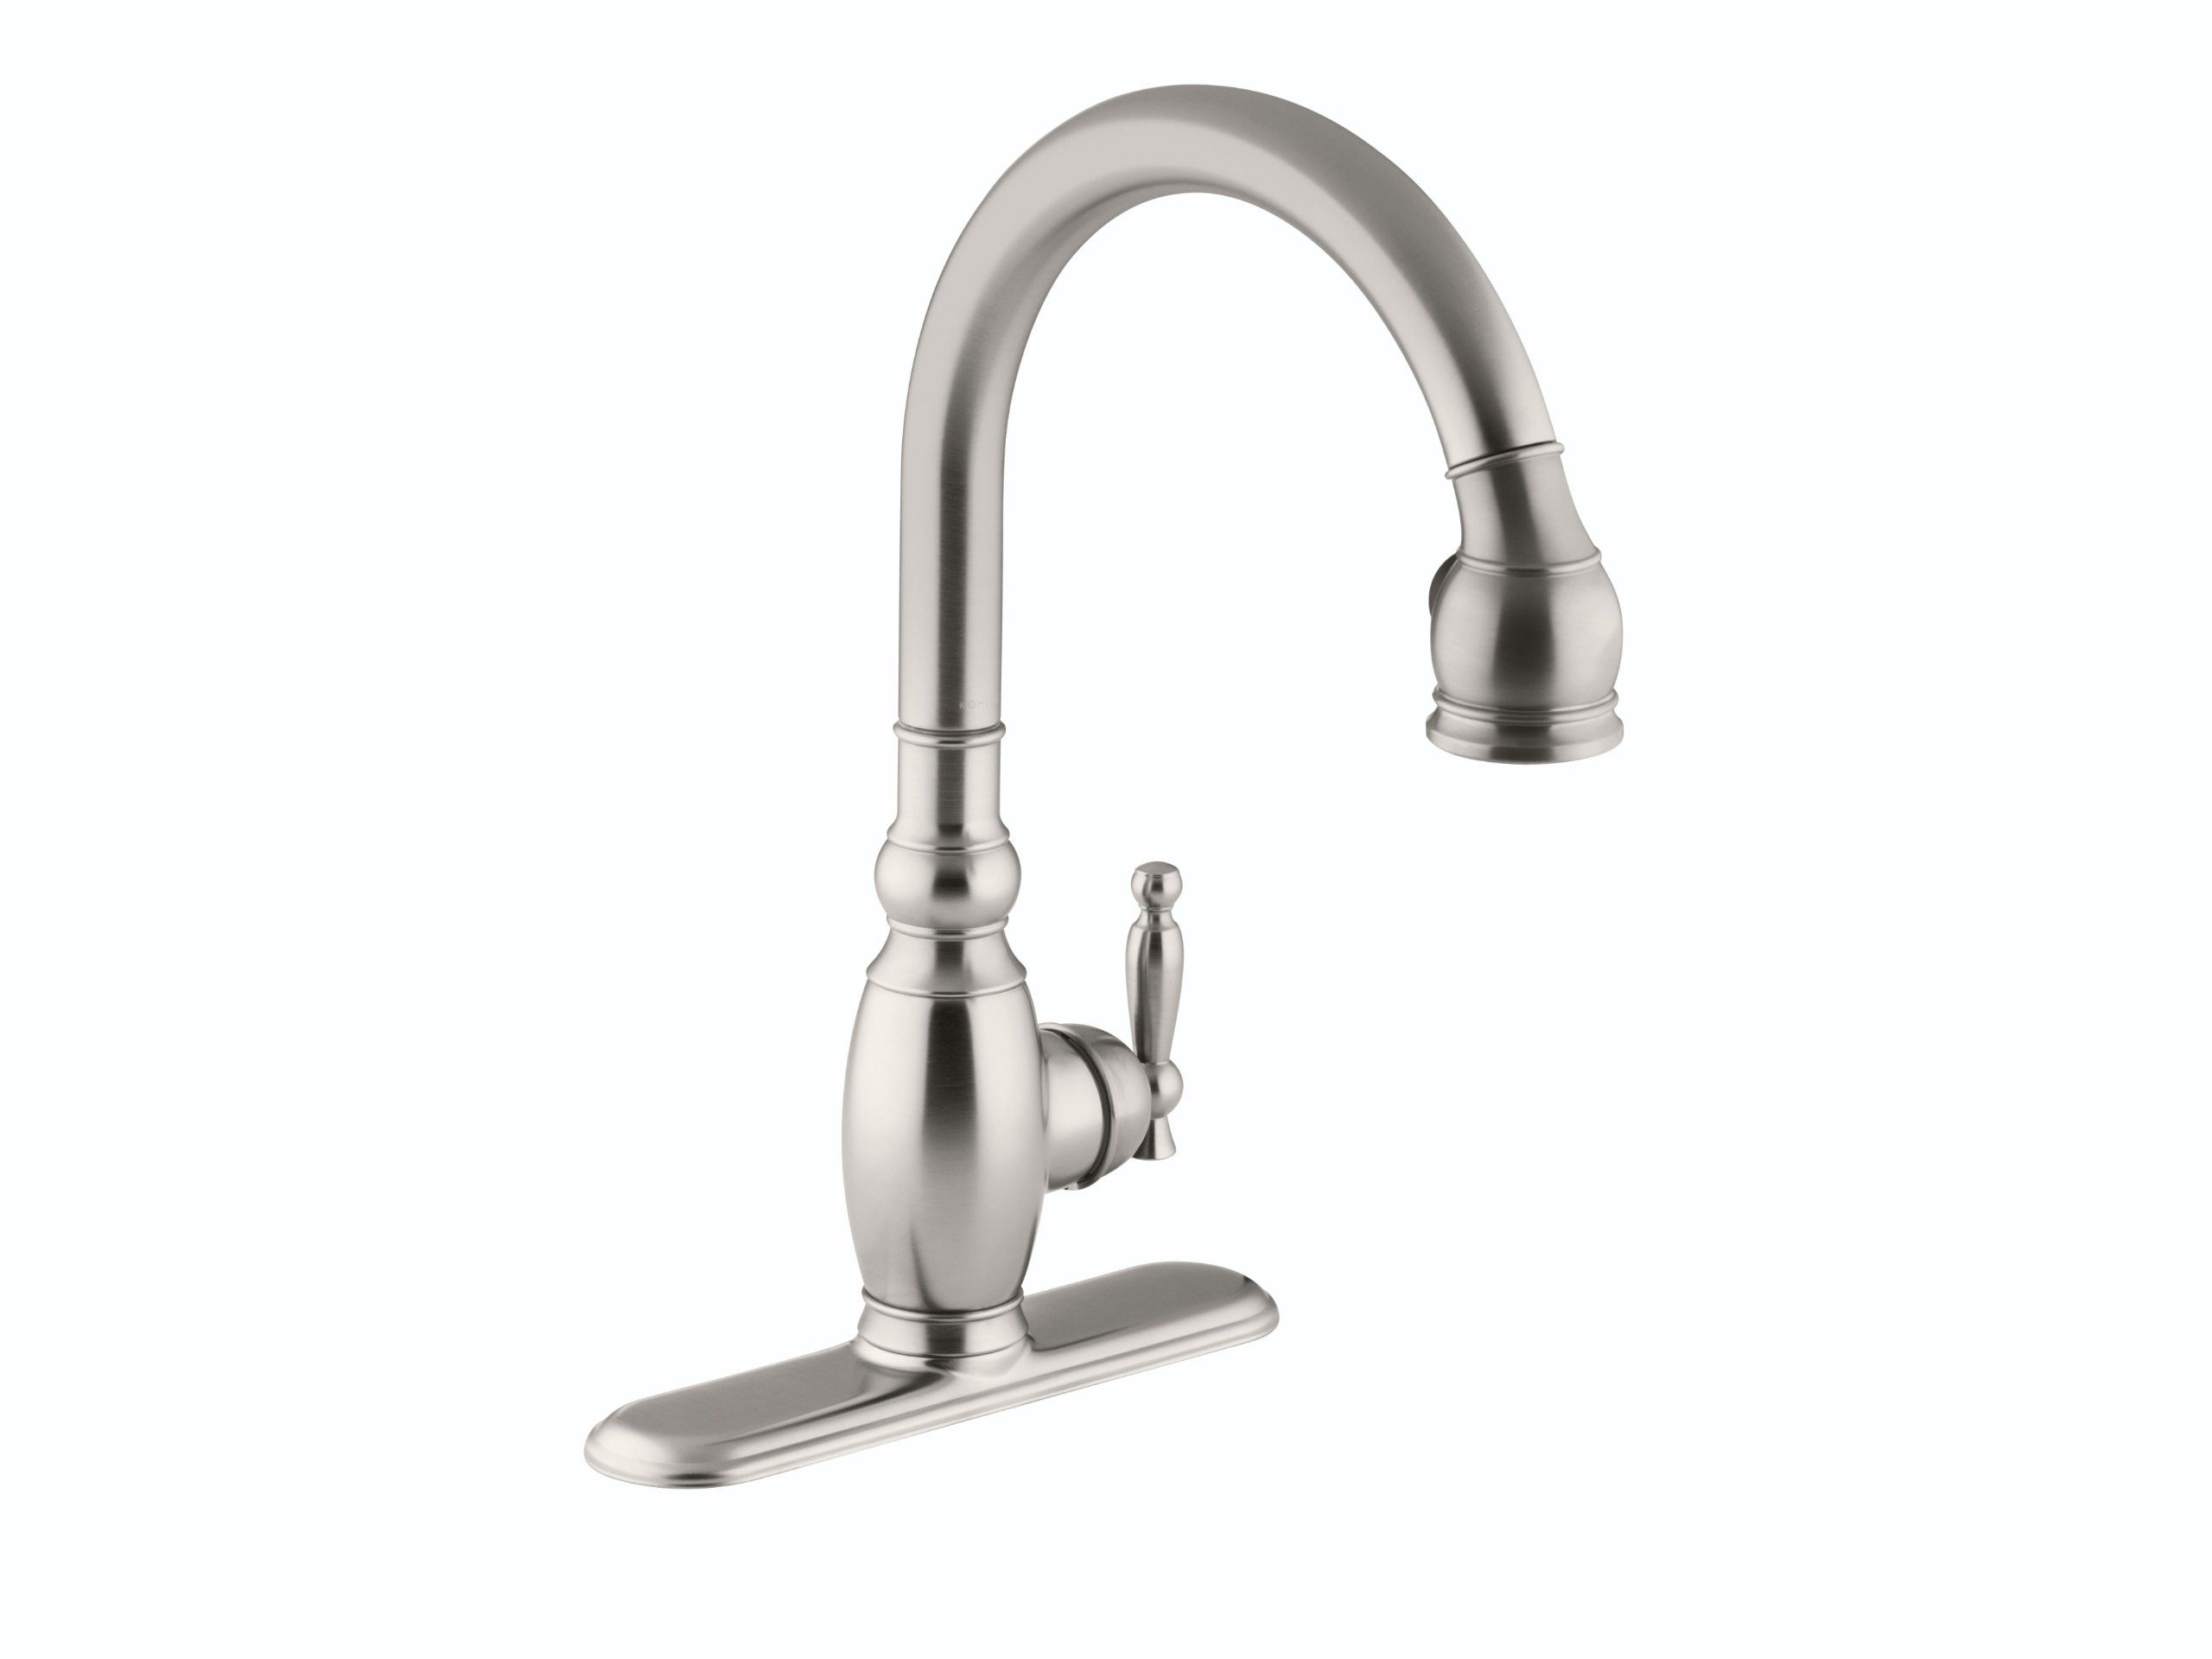 What\'s in the Box Kohler K-690 Vinnata Kitchen Sink Faucet and ...